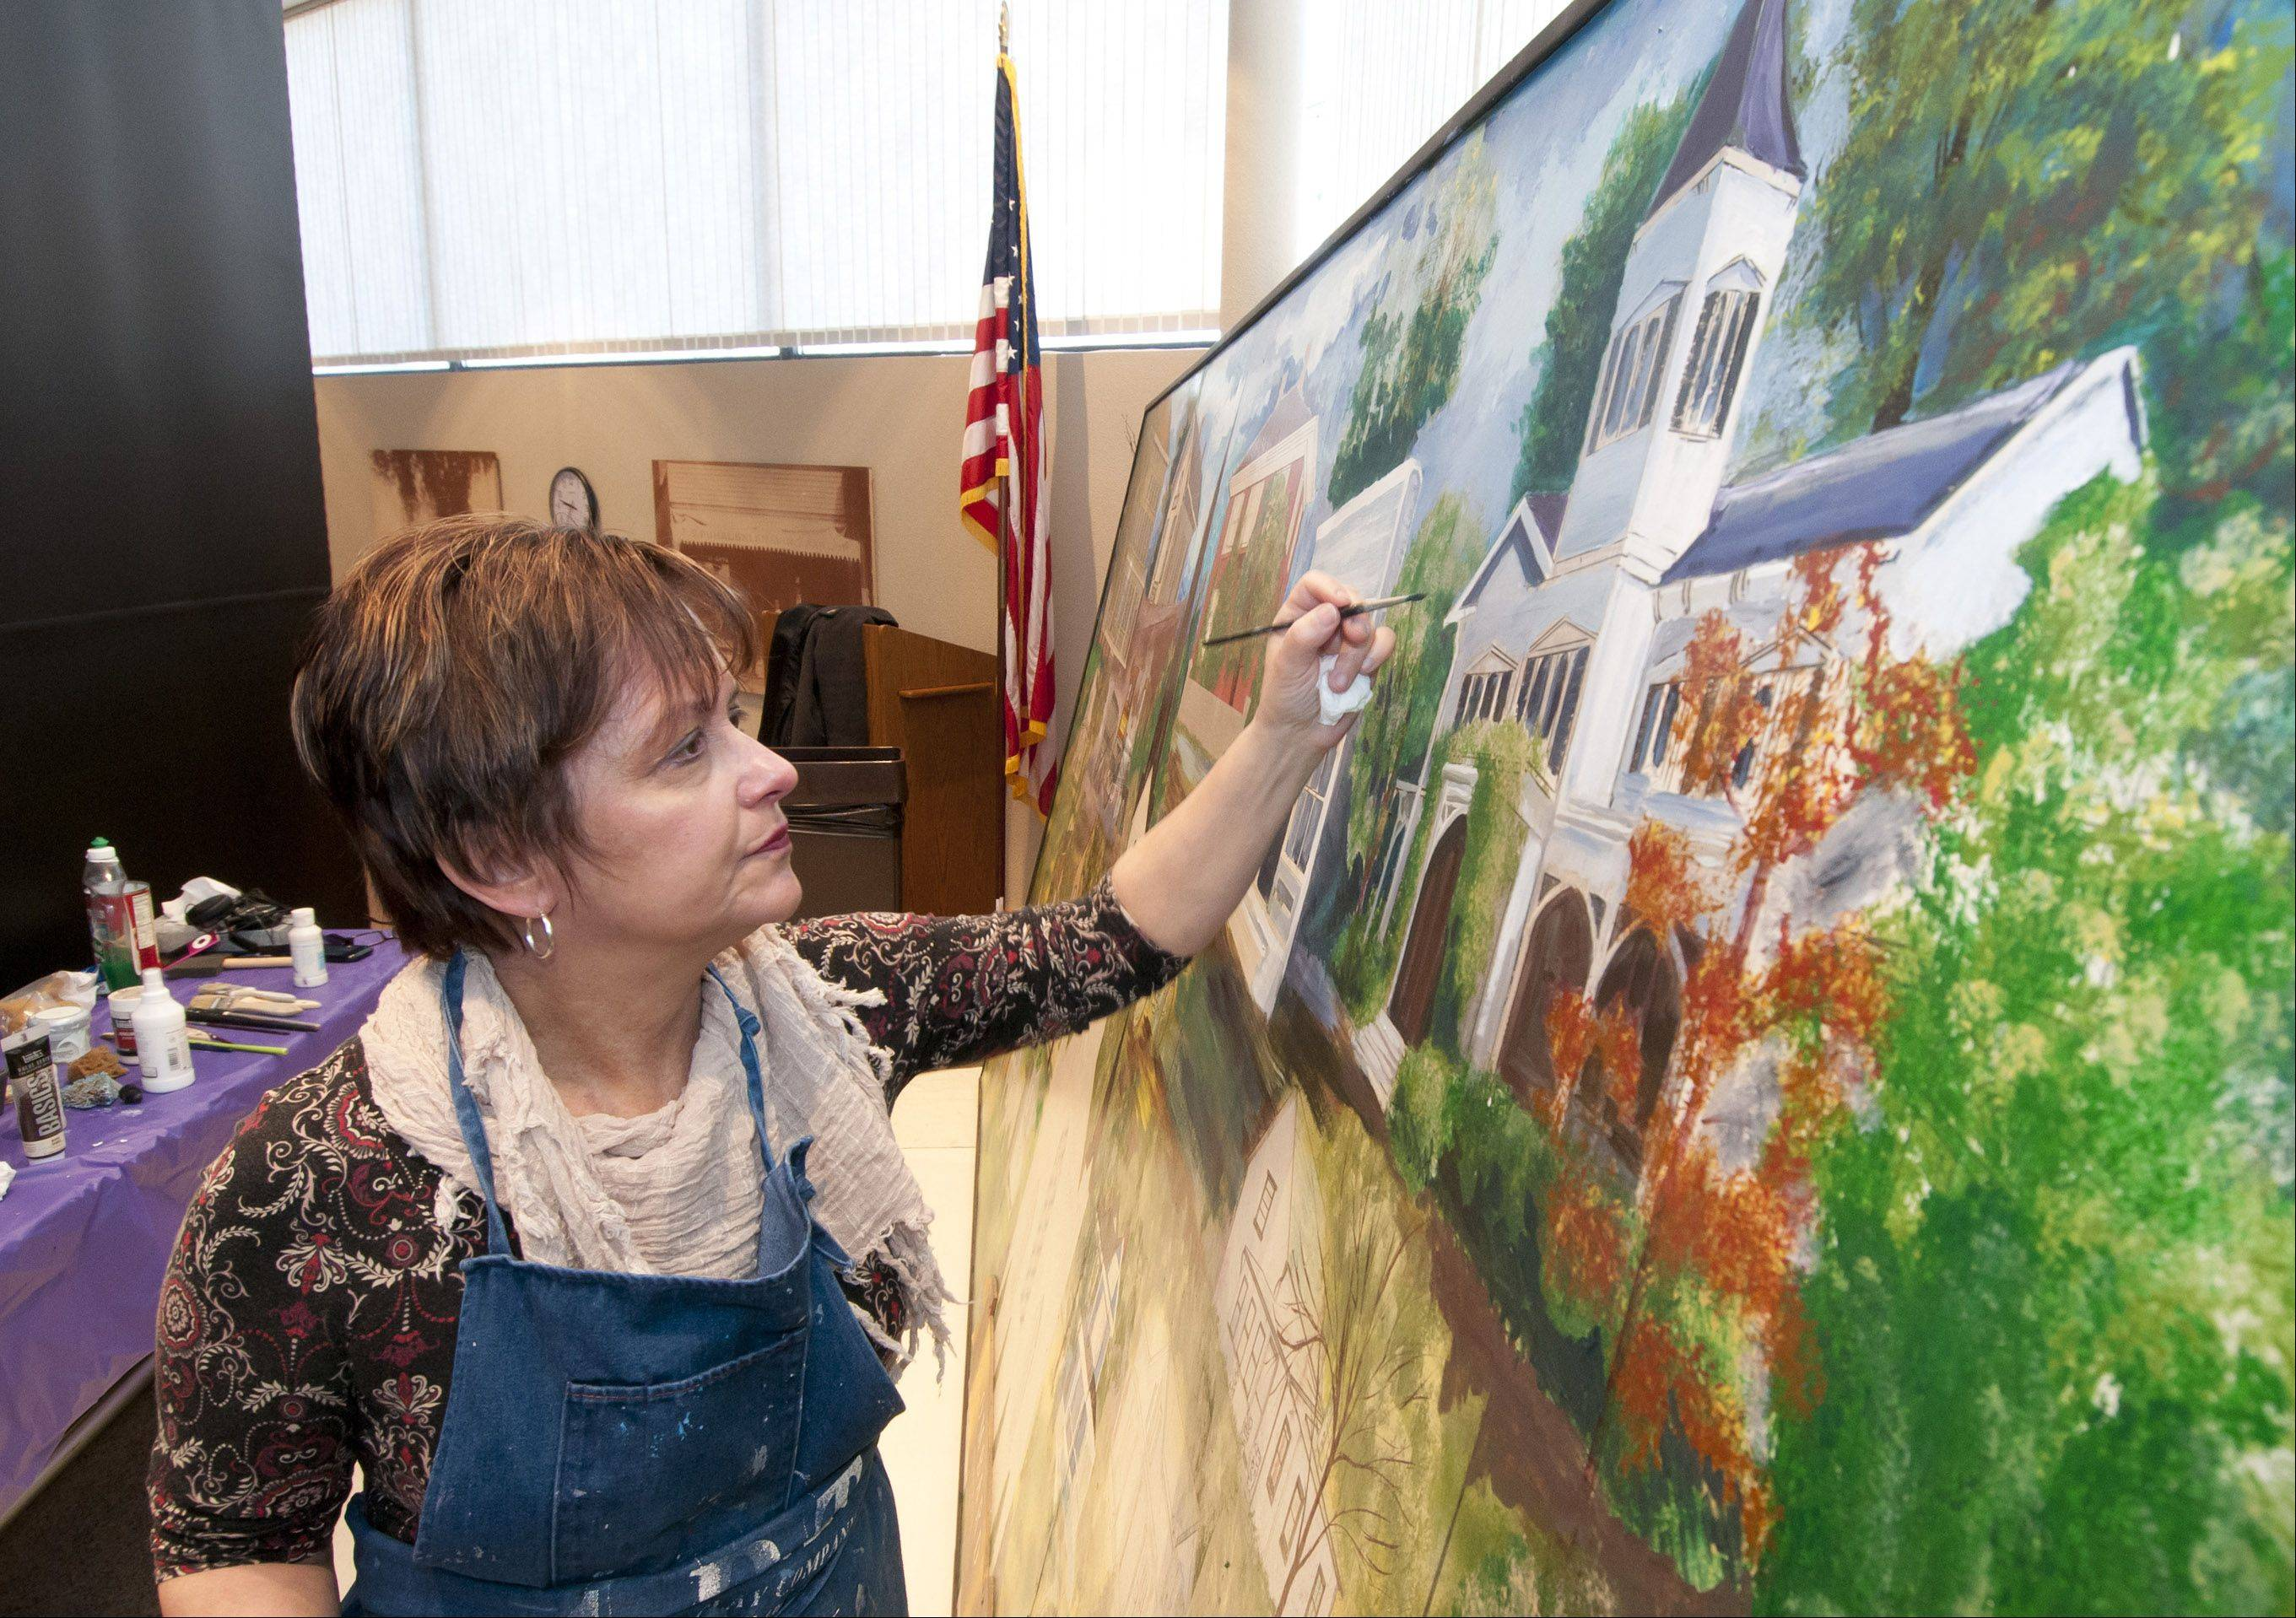 Lombard Trustee Laura Fitzpatrick's efforts to complete an unfinished piece by the late muralist Vern Milem have drawn criticism from one area artist who says she has no right to alter another person's work.